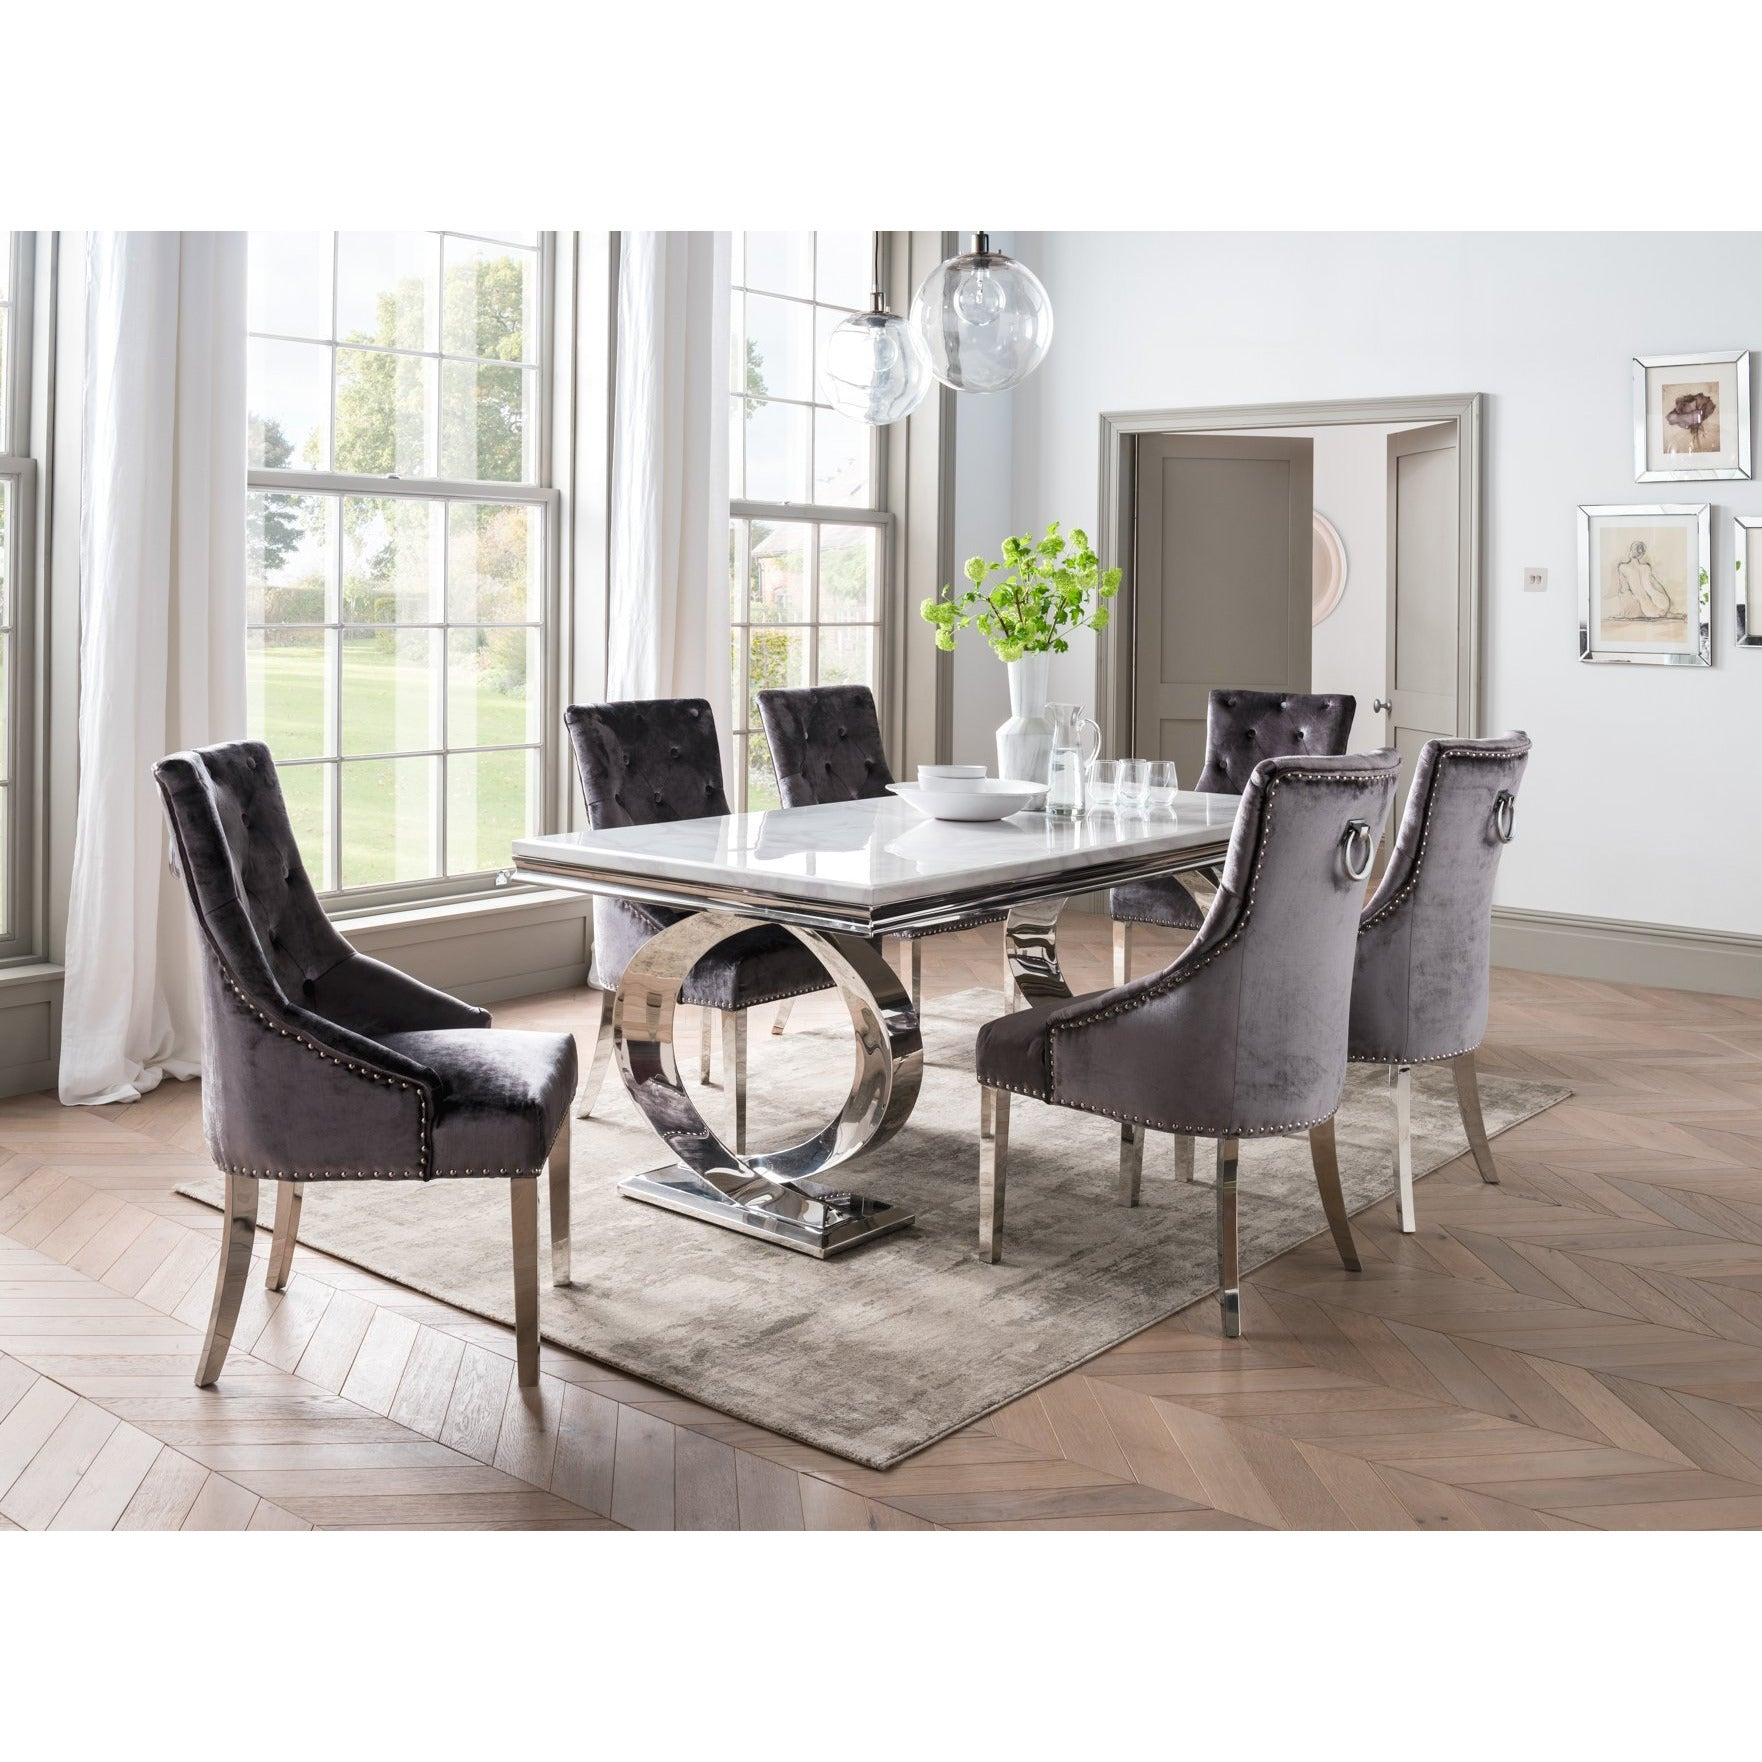 Vida Selene White Marble And Steel 200cm Dining Table With 6 Belvedere